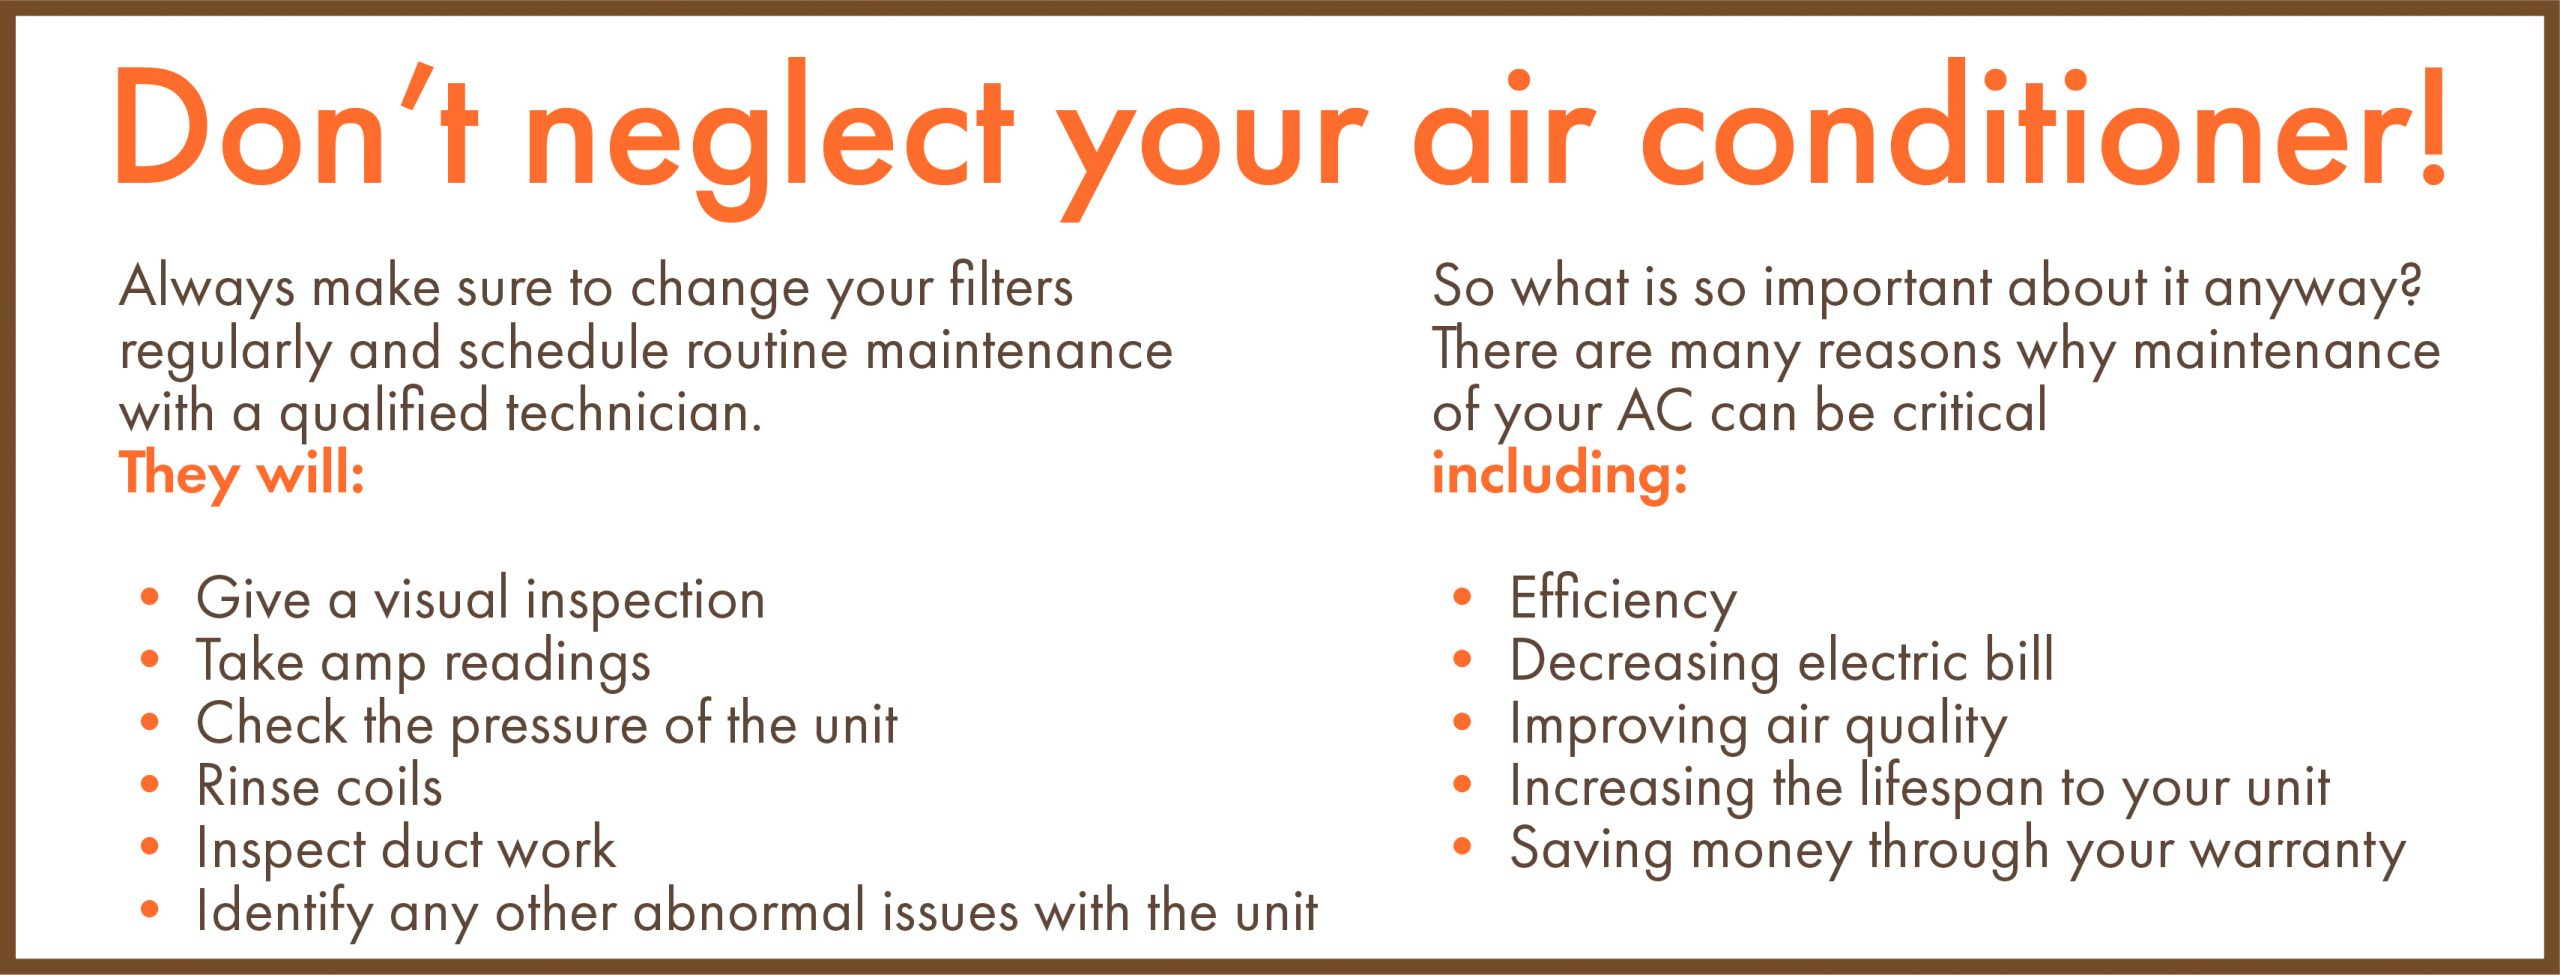 Don't neglect your air conditioner. Always make sure to change your filters regularly and schedule routine maintenance with a qualified technician. They will: Give a visual inspection. Take amp readings. Check the pressure of the unit. Rinse coils. Inspect duct work. Identify any other abnormal issues with the unit. So what is so important about it anyway? There are many reasons why maintenance of your AC can be critical including: Efficiency Decreasing electric bill Improving air quality Increasing the lifespan to your unit Saving money through your warranty